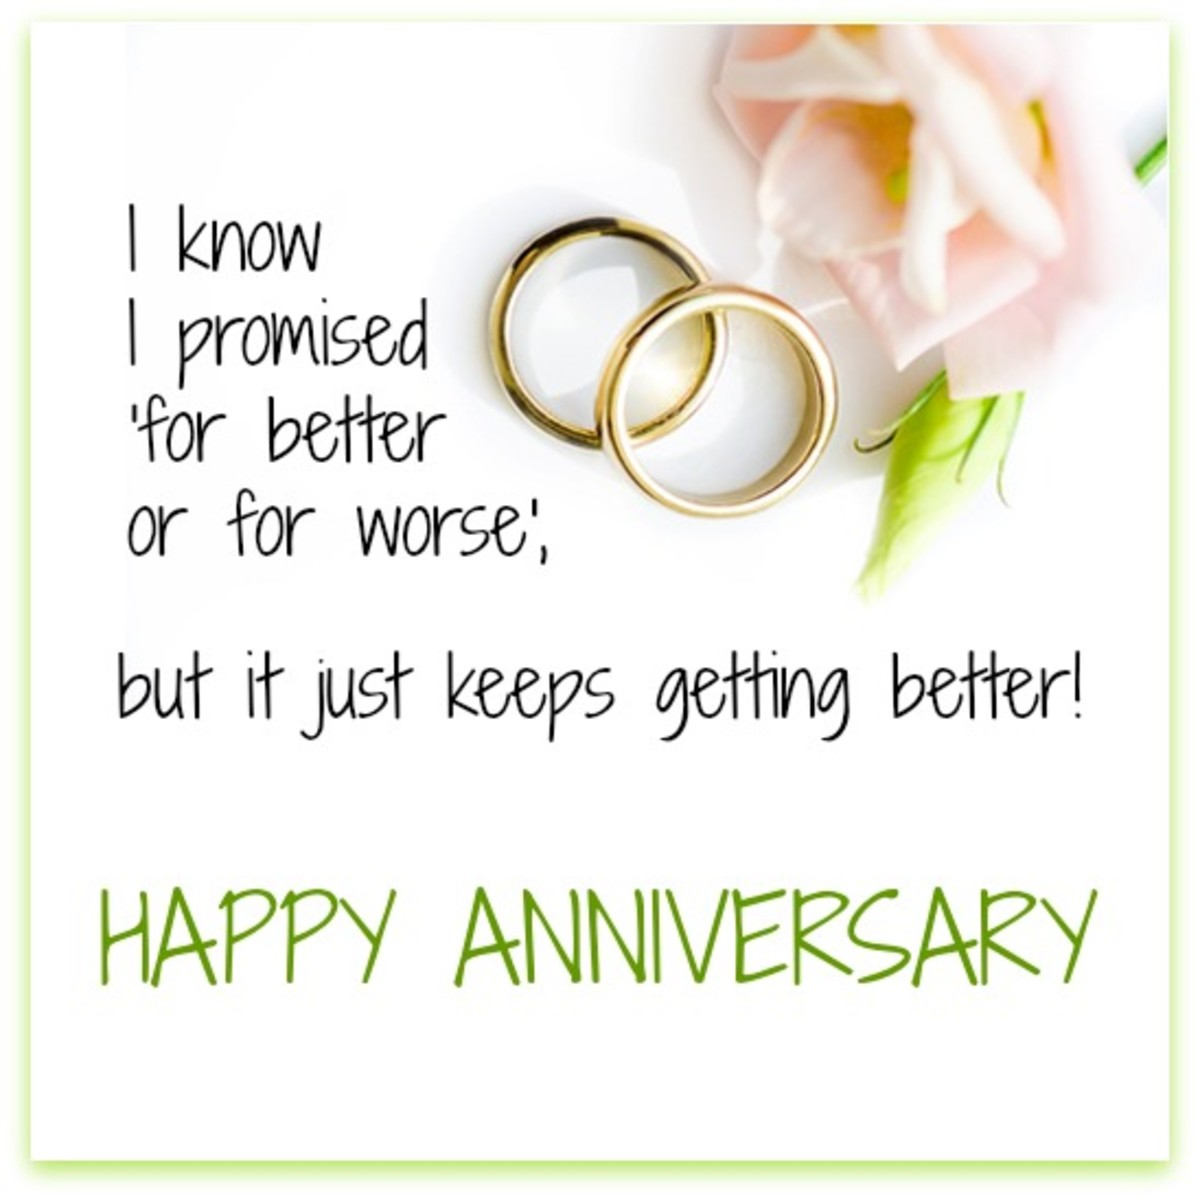 Anniversary wishes happy messages